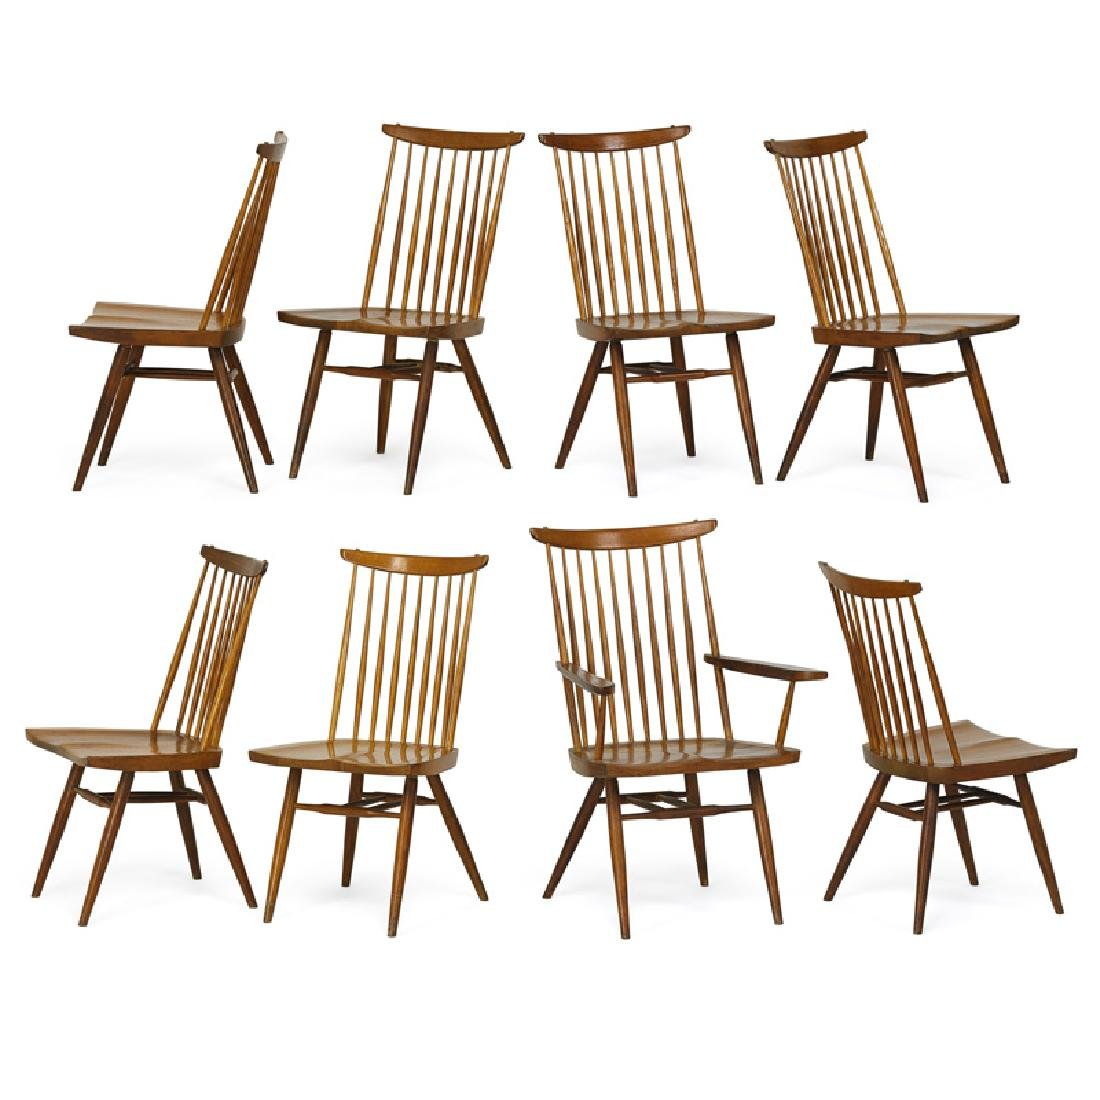 GEORGE NAKASHIMA Eight New chairs